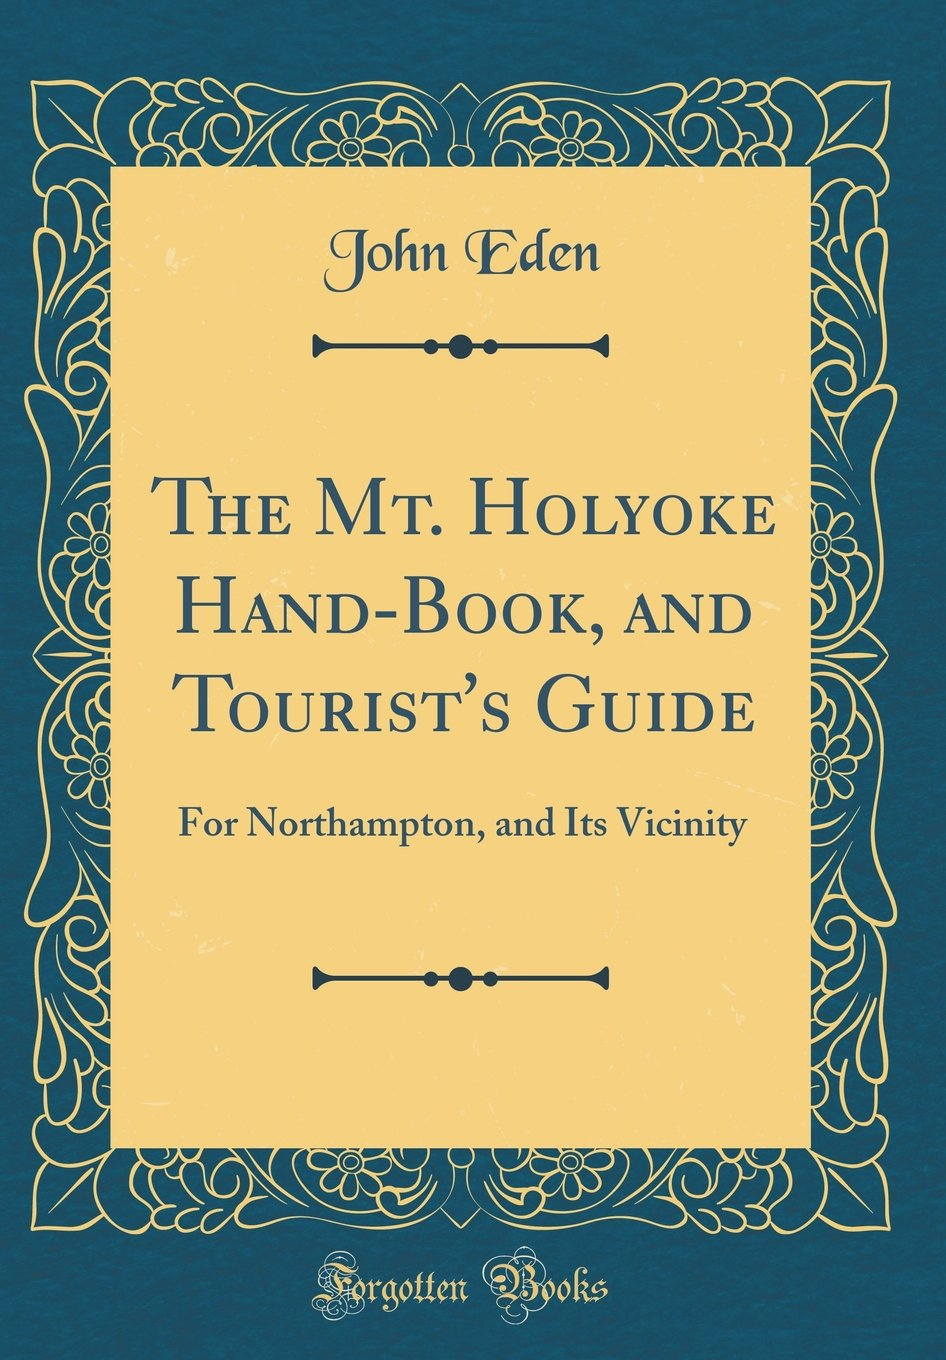 The Mt. Holyoke Hand-Book, and Tourist's Guide: For Northampton, and Its  Vicinity (Classic Reprint): John Eden: 9780266251460: Amazon.com: Books